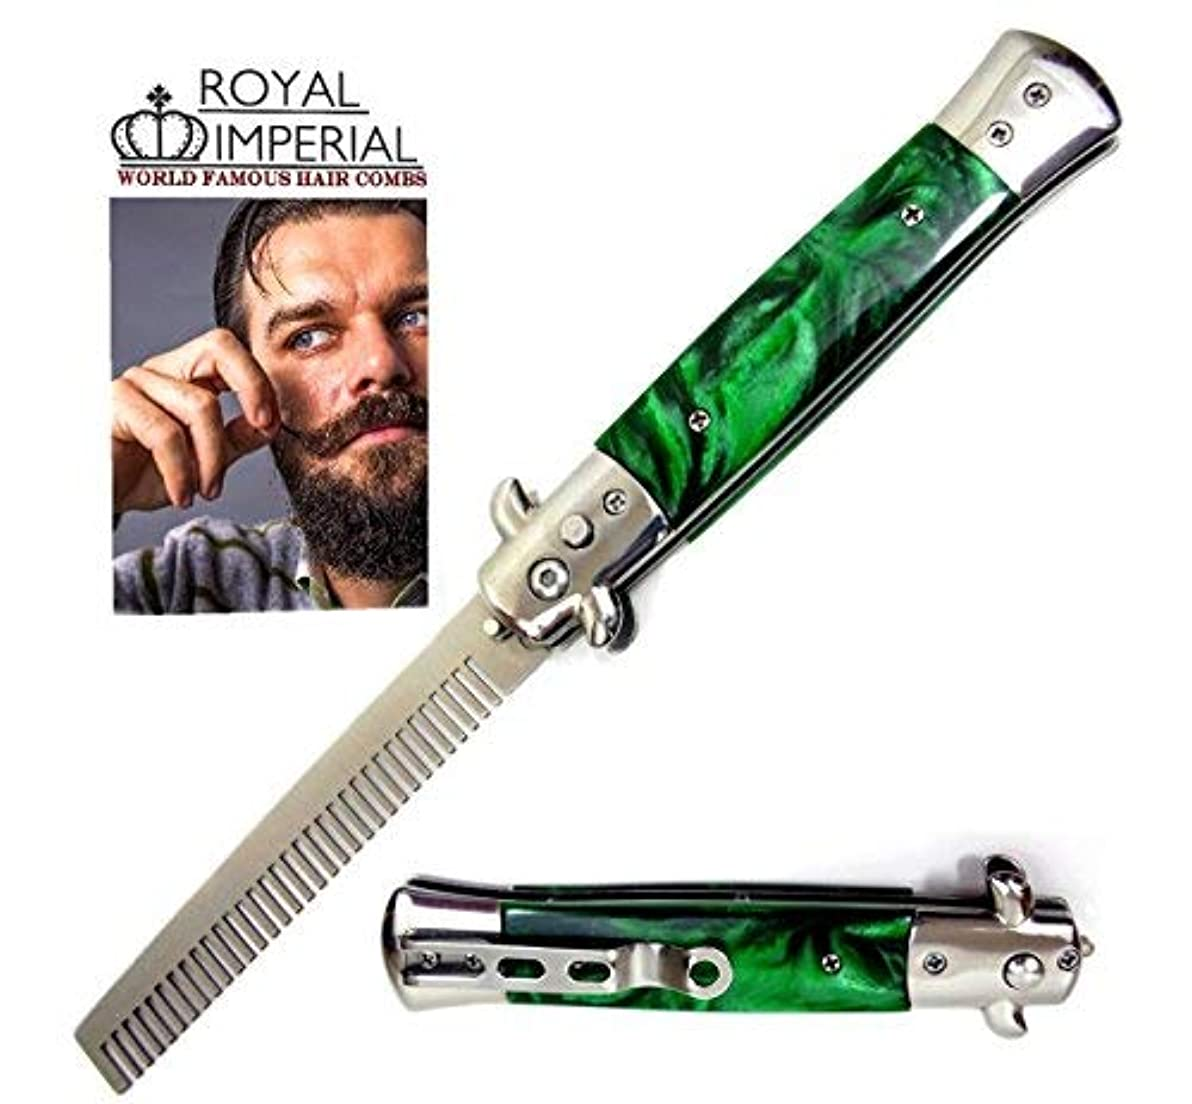 Royal Imperial Metal Switchblade Pocket Folding Flick Hair Comb For Beard, Mustache, Head GREEN MIST Handle ~...